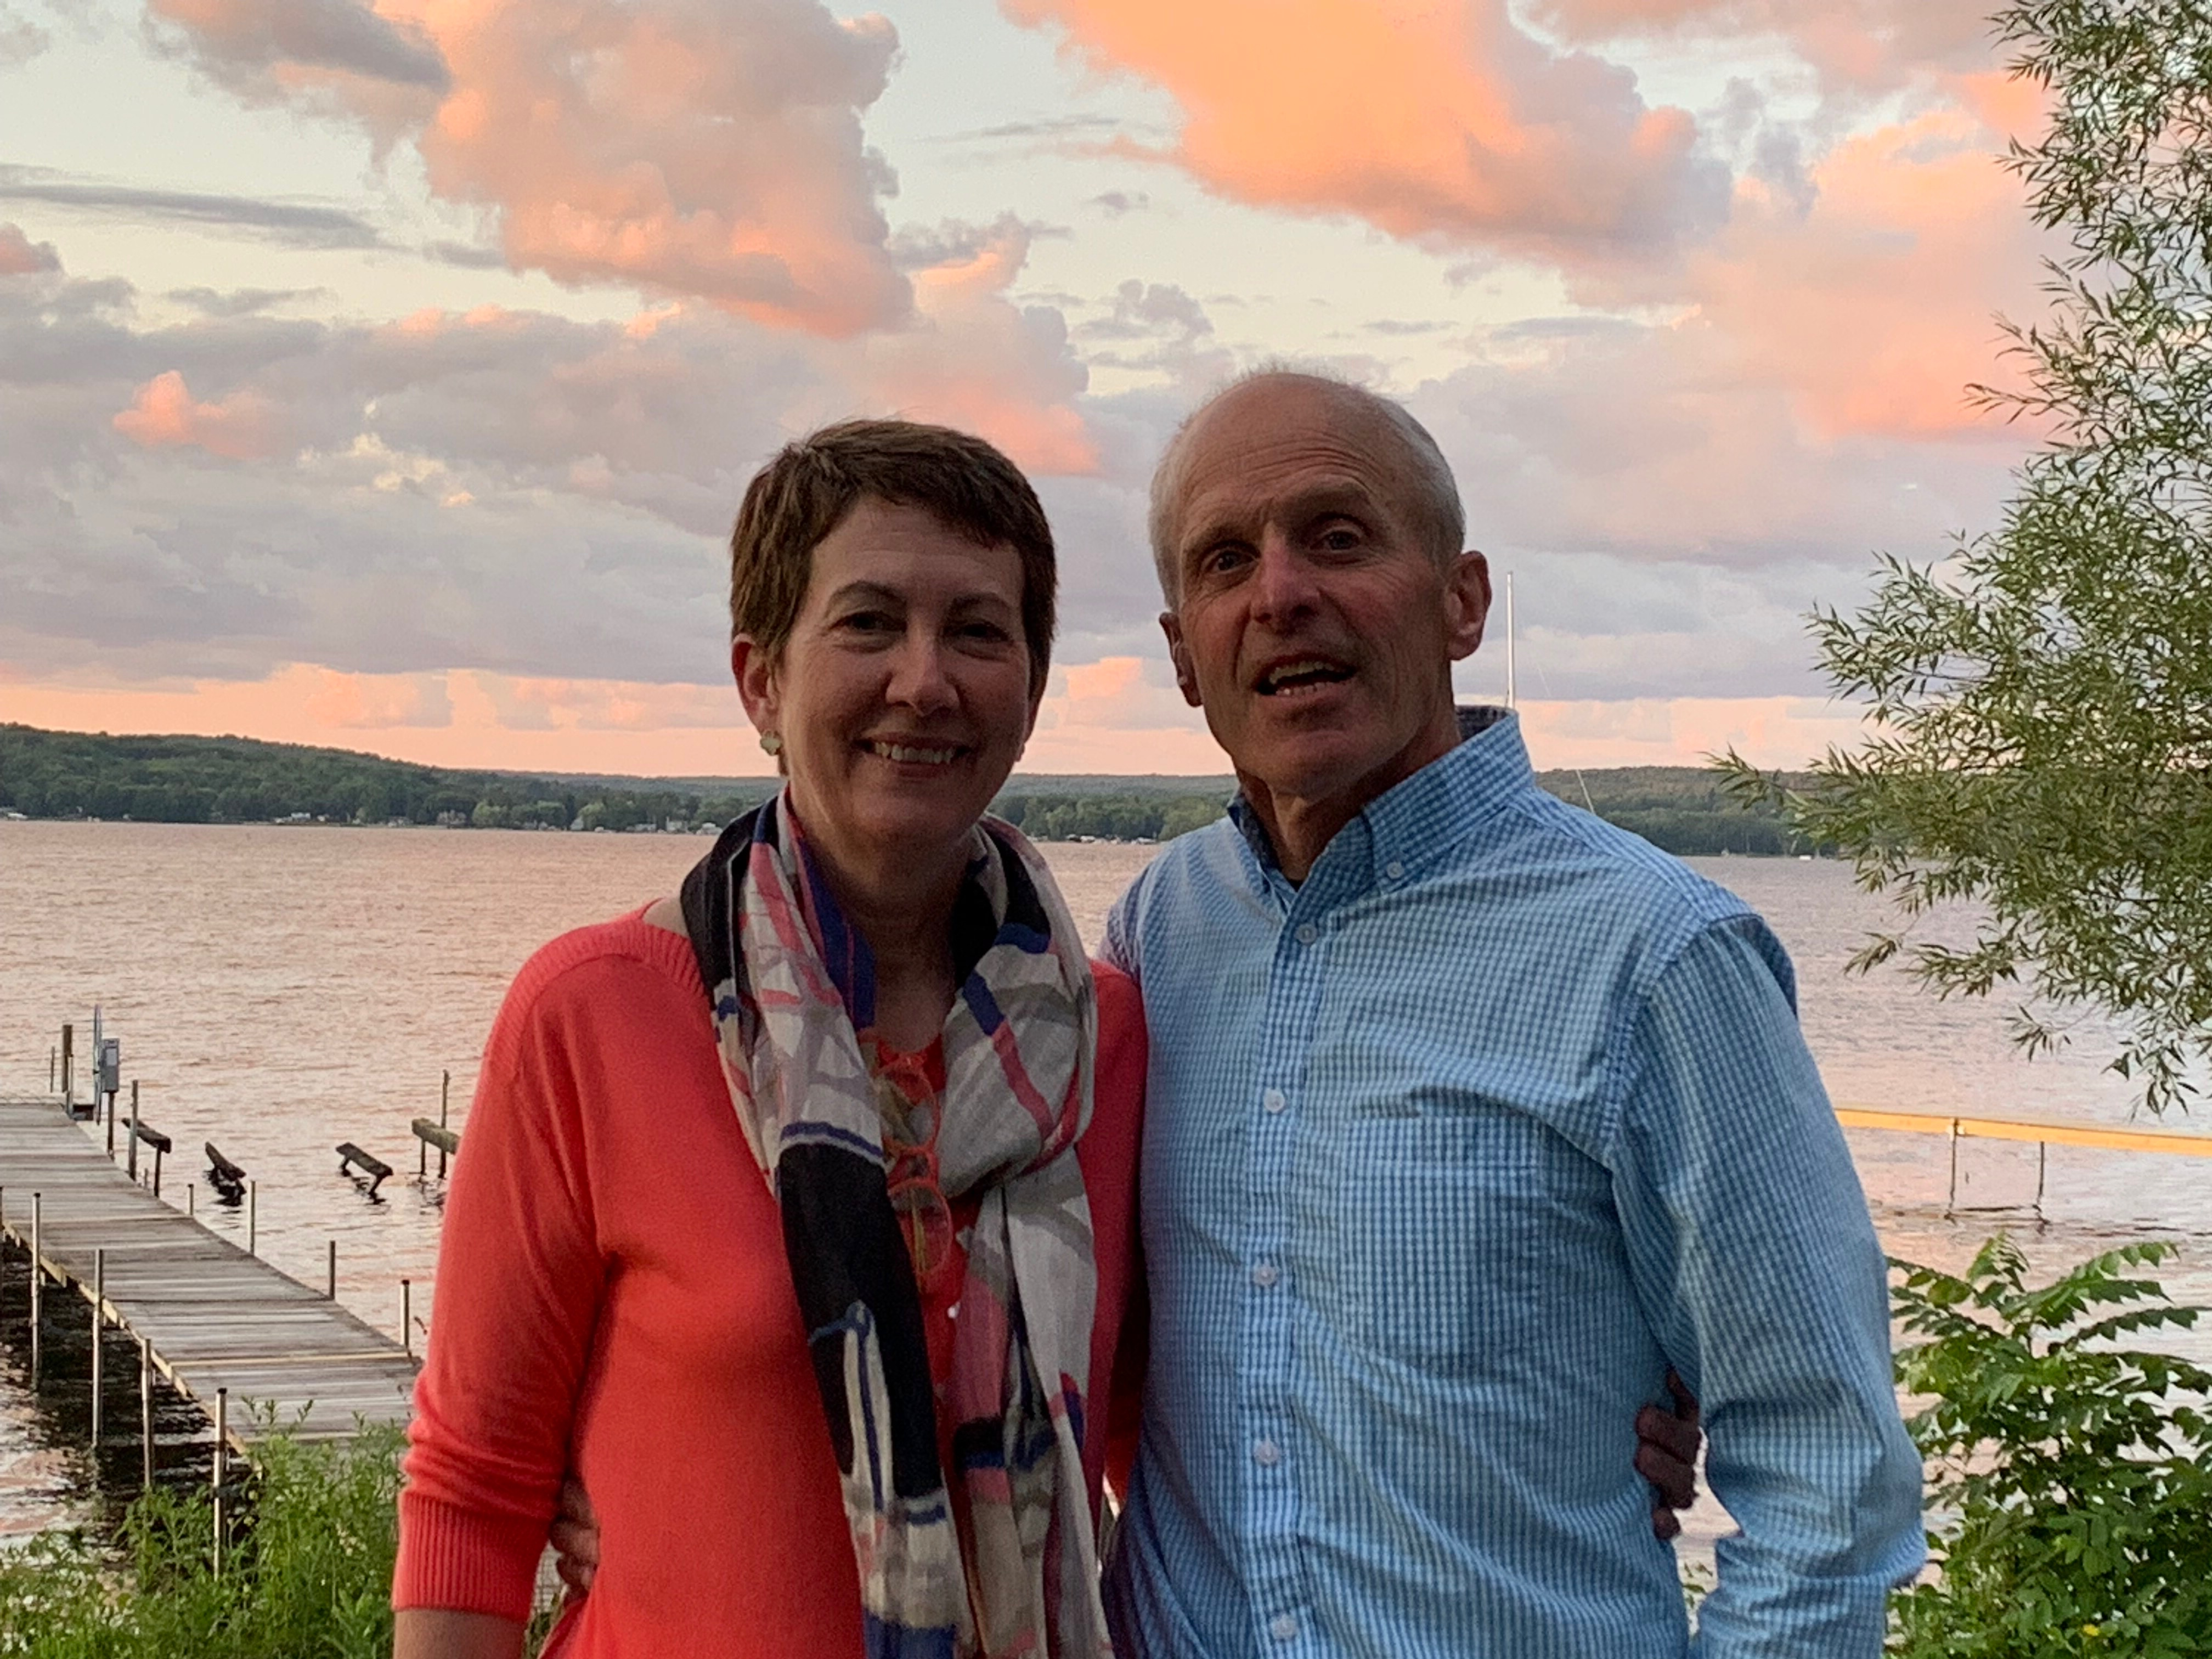 Bonnie and her husband at Chautauqua Lake. (Photo courtesy of Bonnie Gwin)